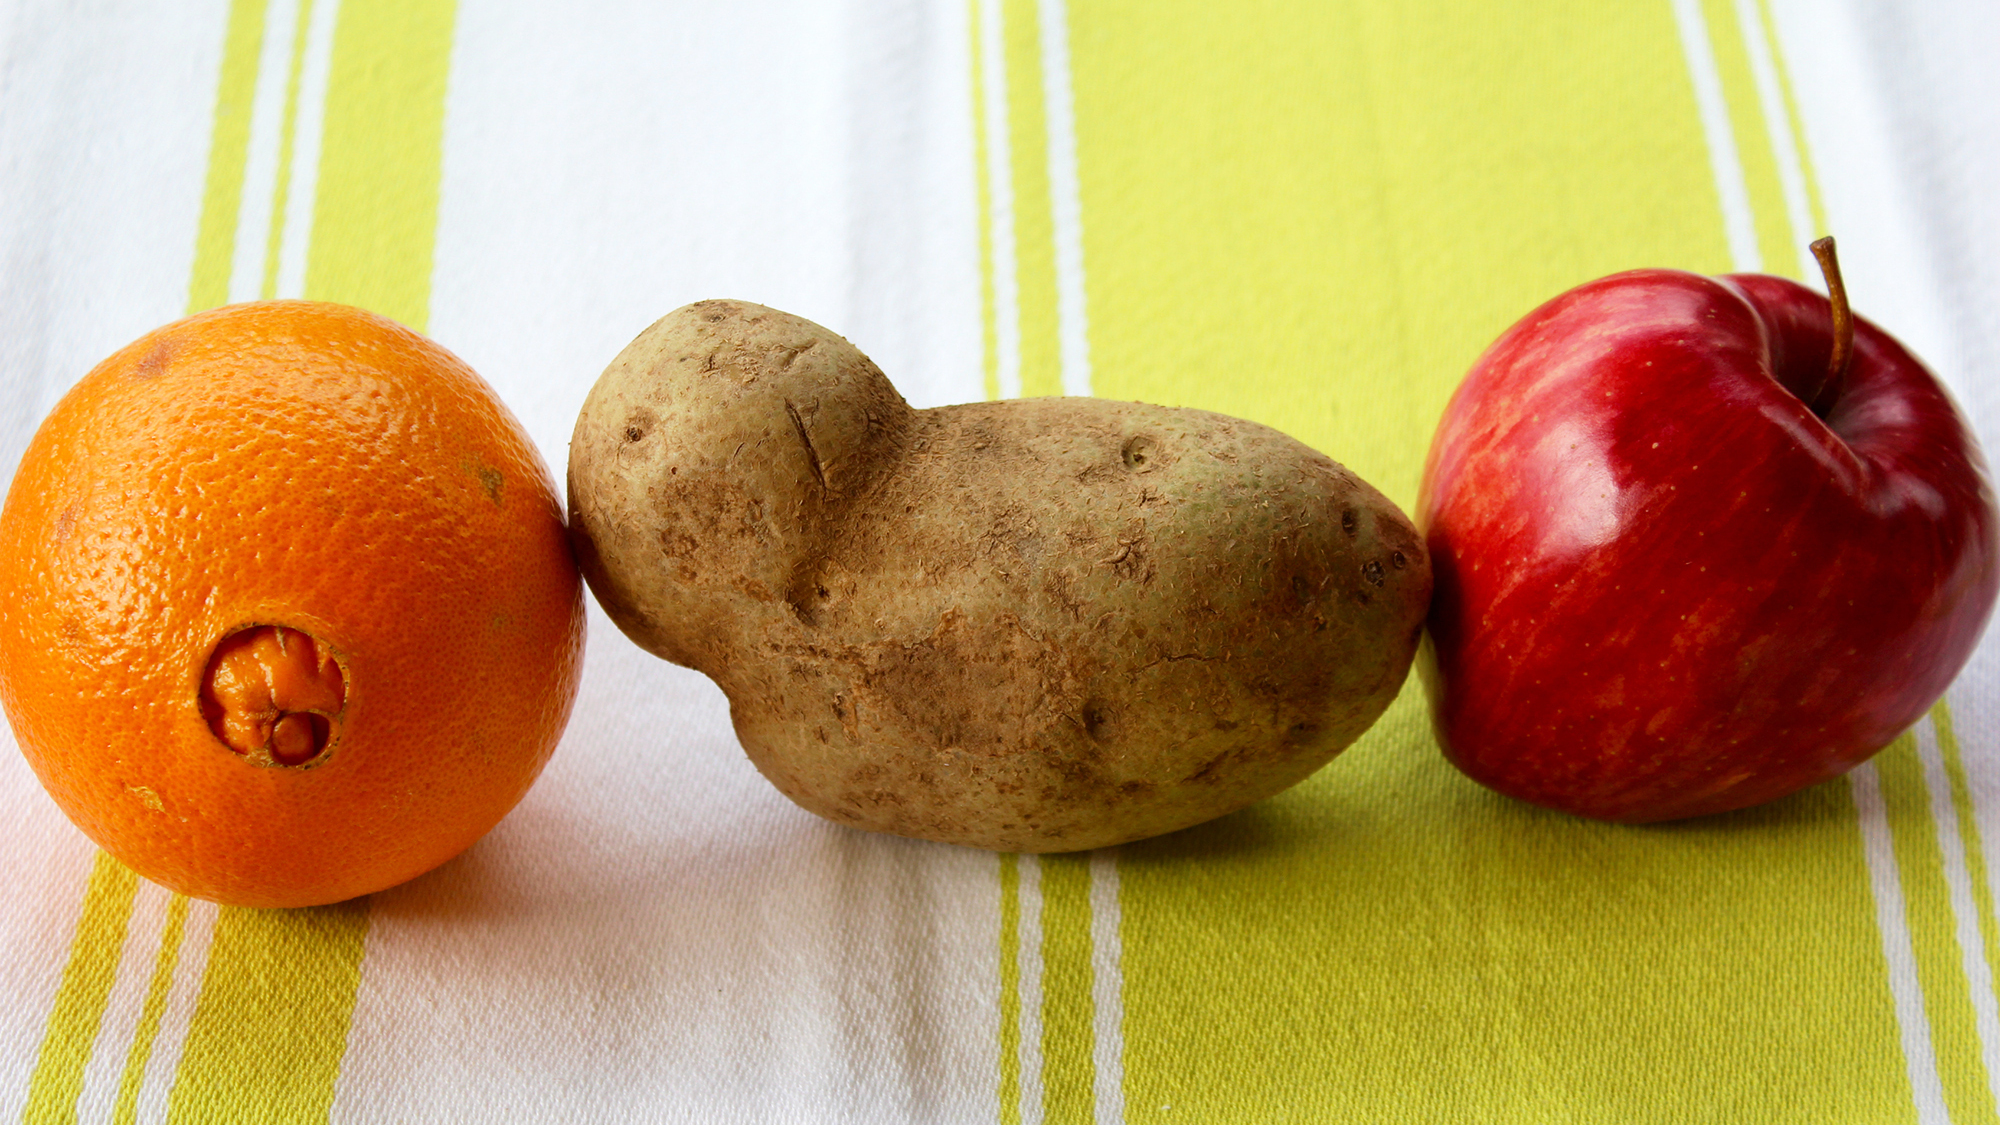 The Ugly New Produce Coming to Whole Foods